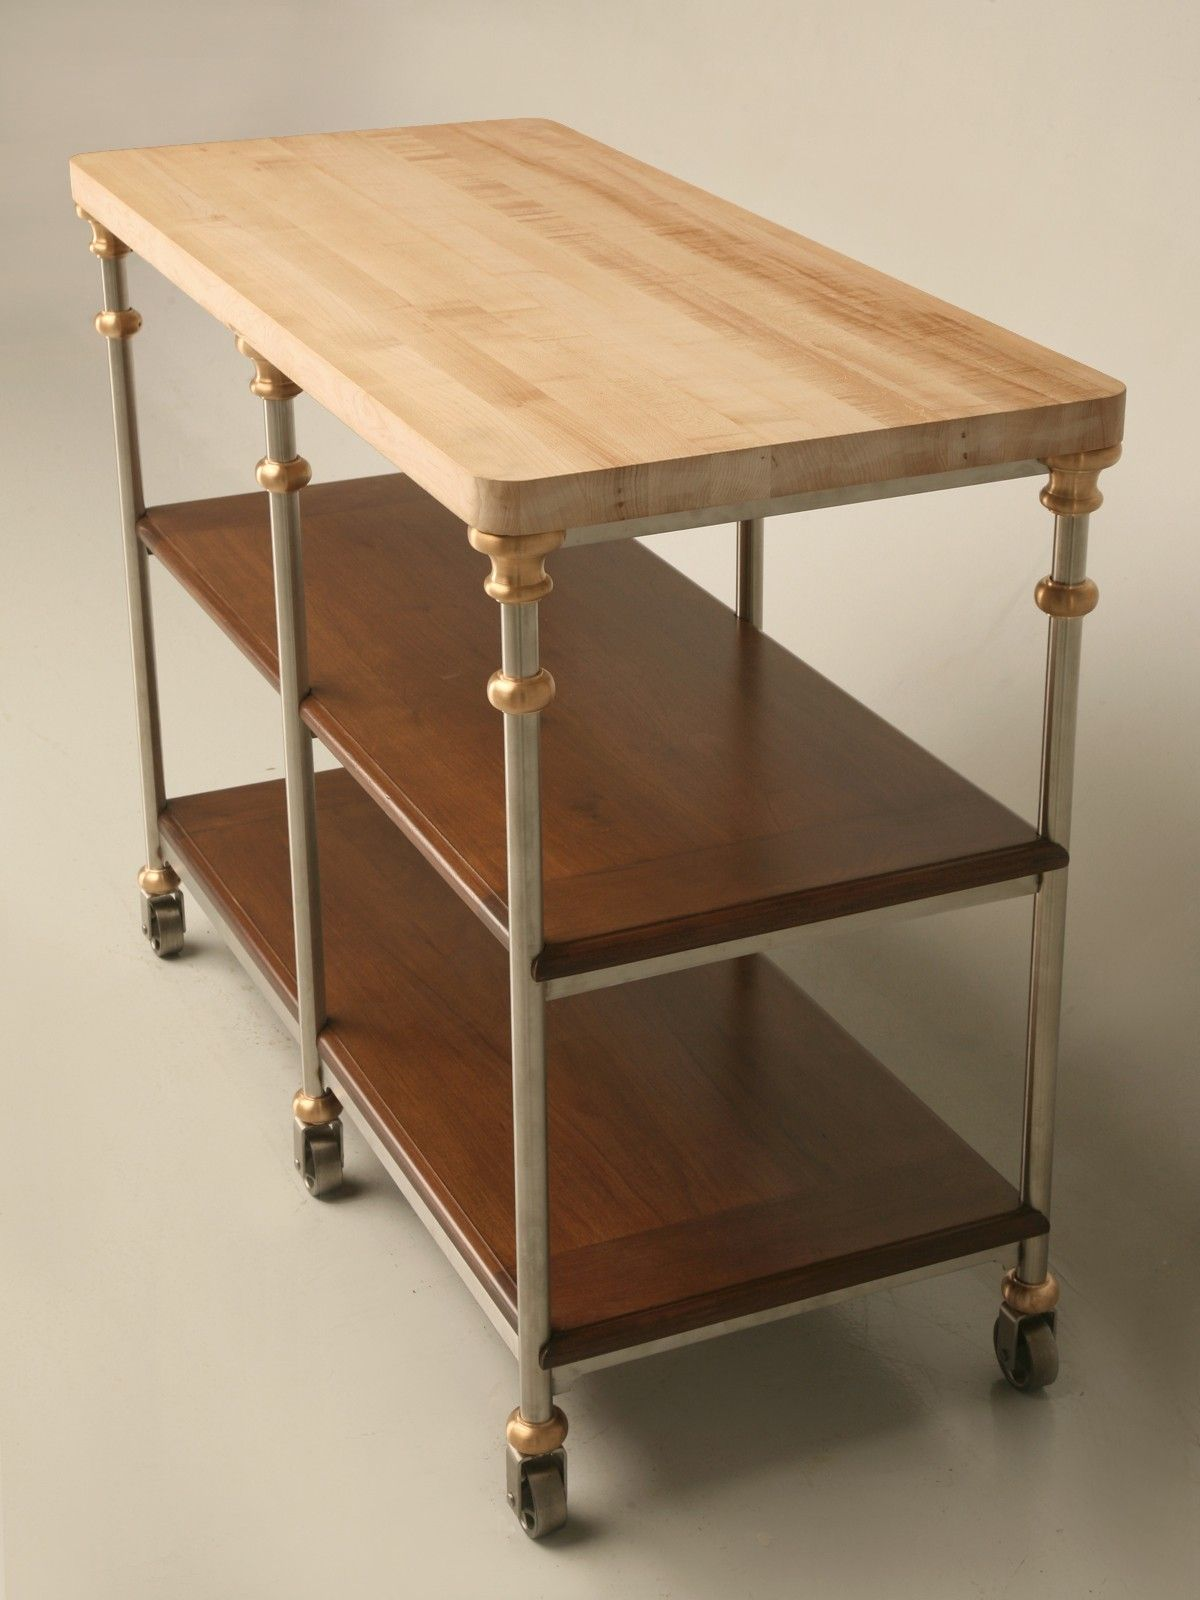 Shallow Stainless Steel Kitchen Island With Oak Shelves And Butcher Block  Top